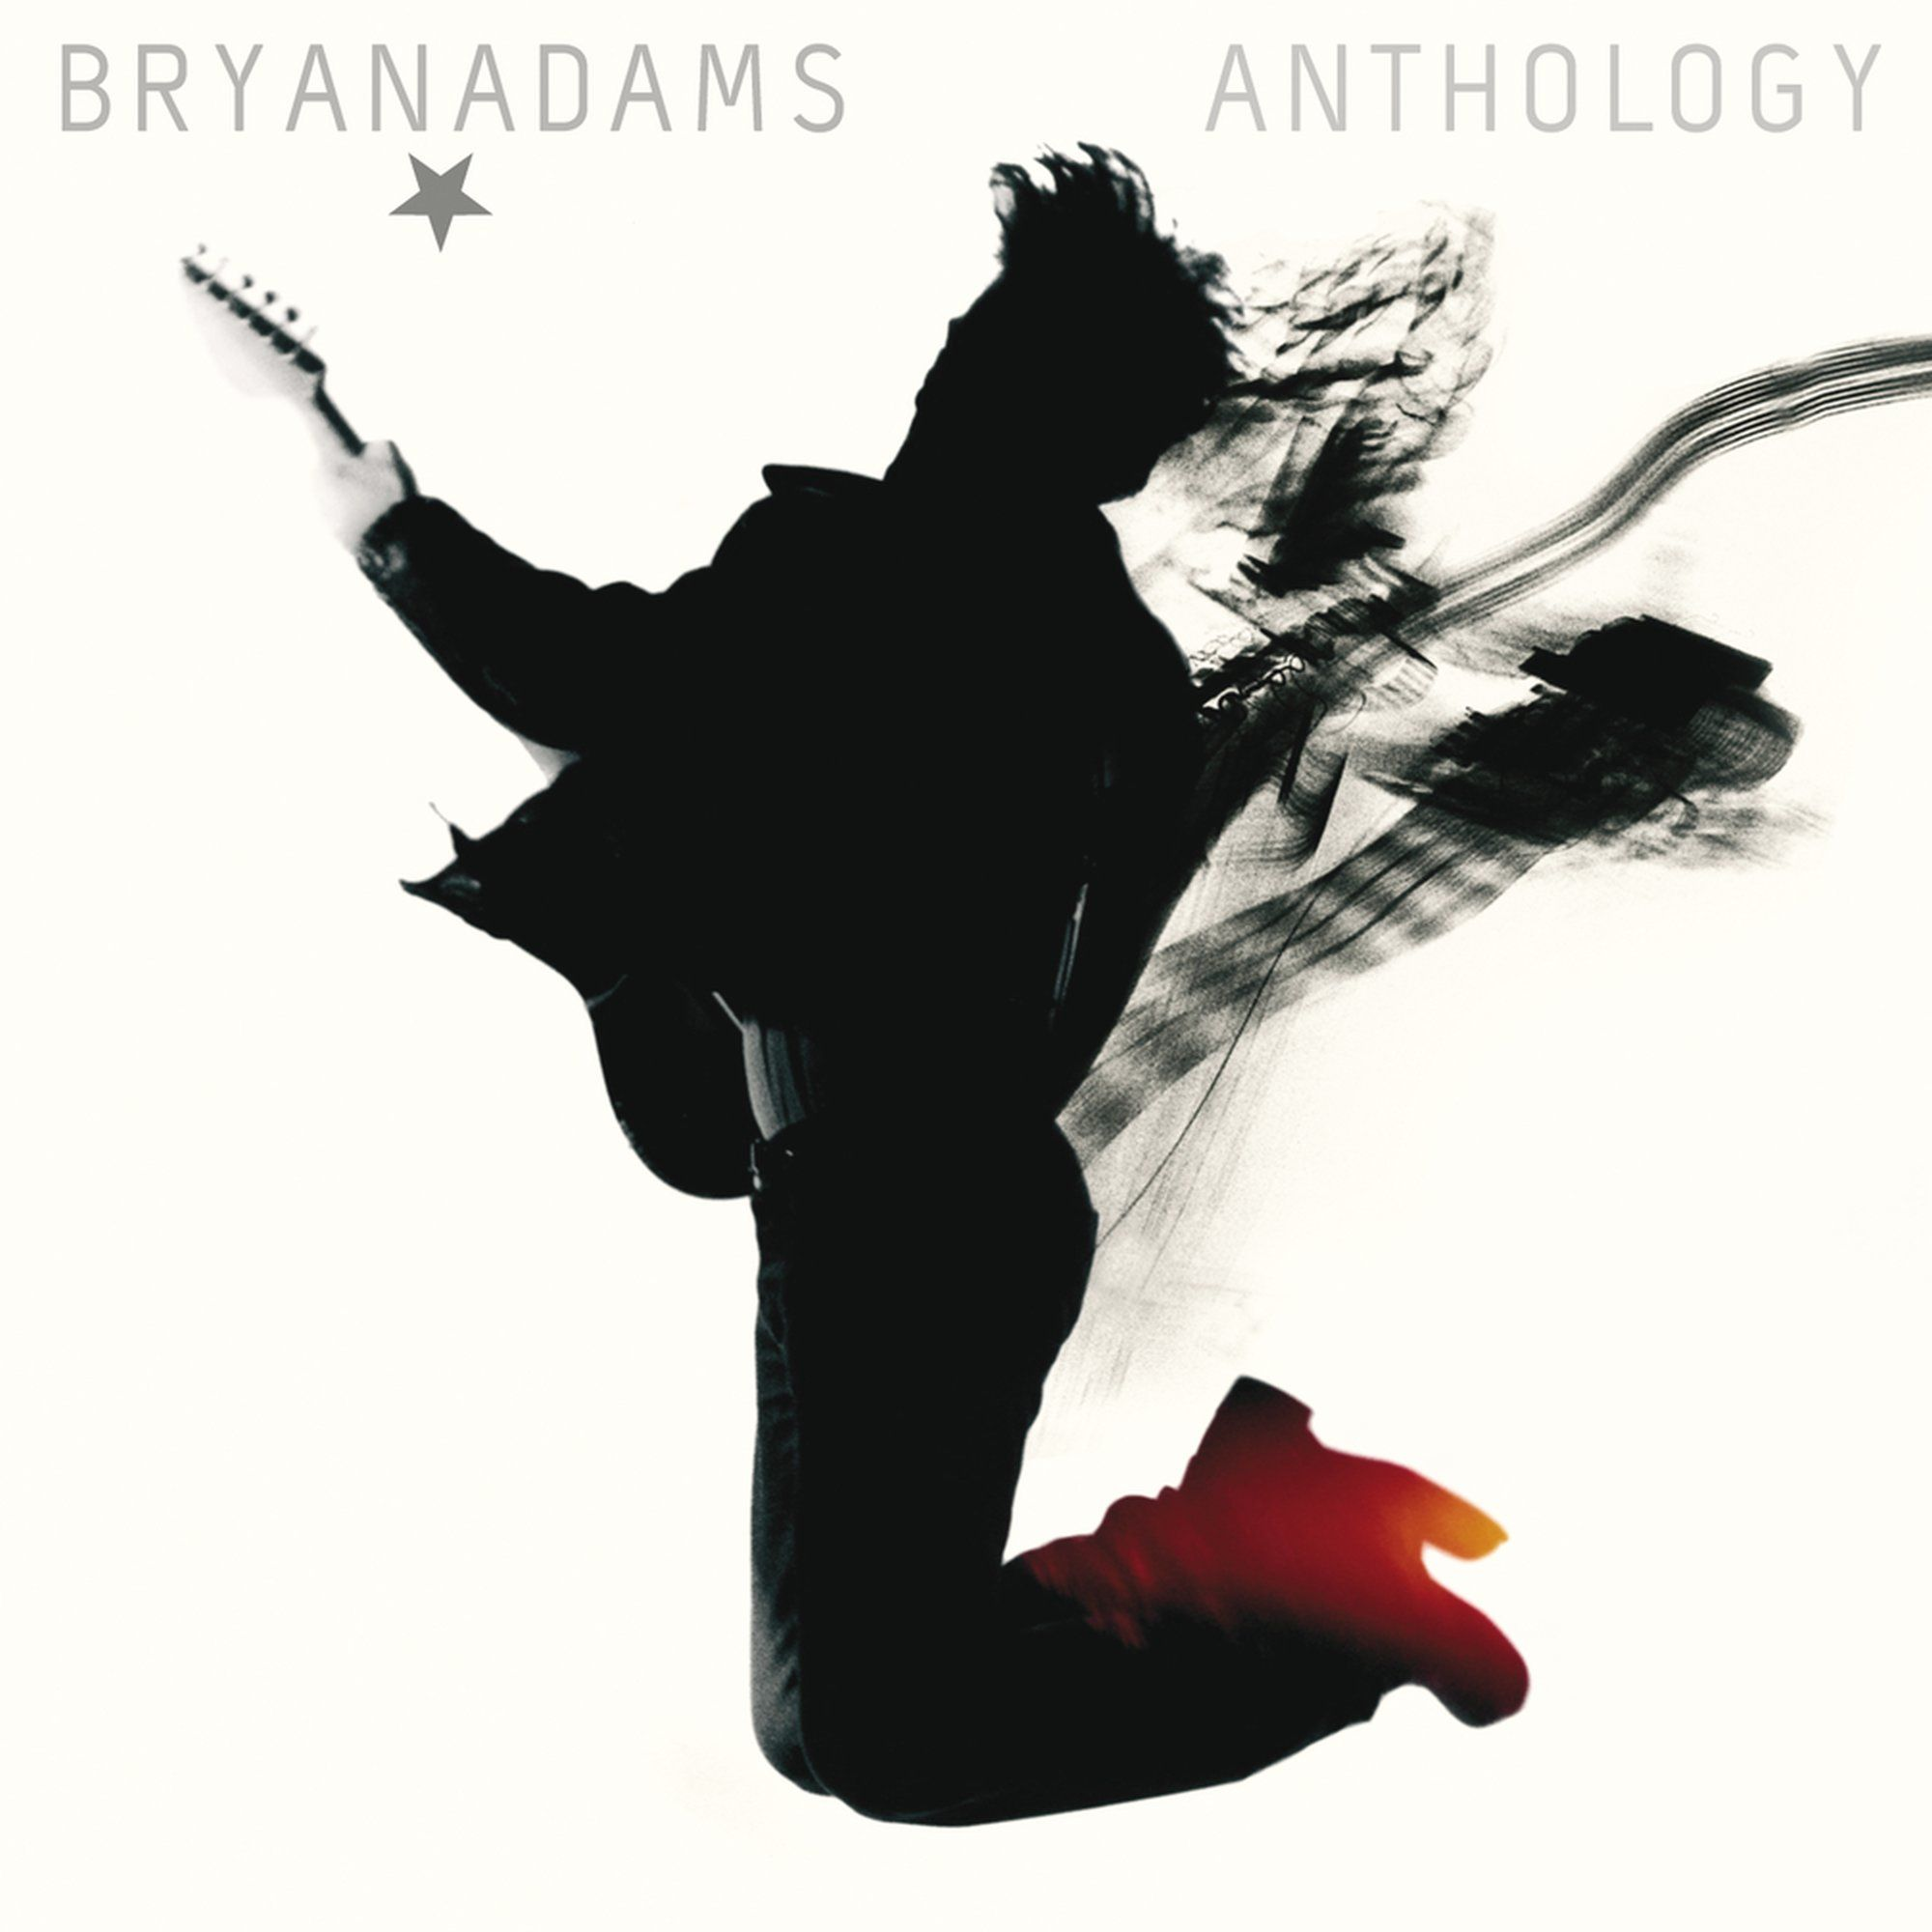 Bryan Adams - Anthology album cover